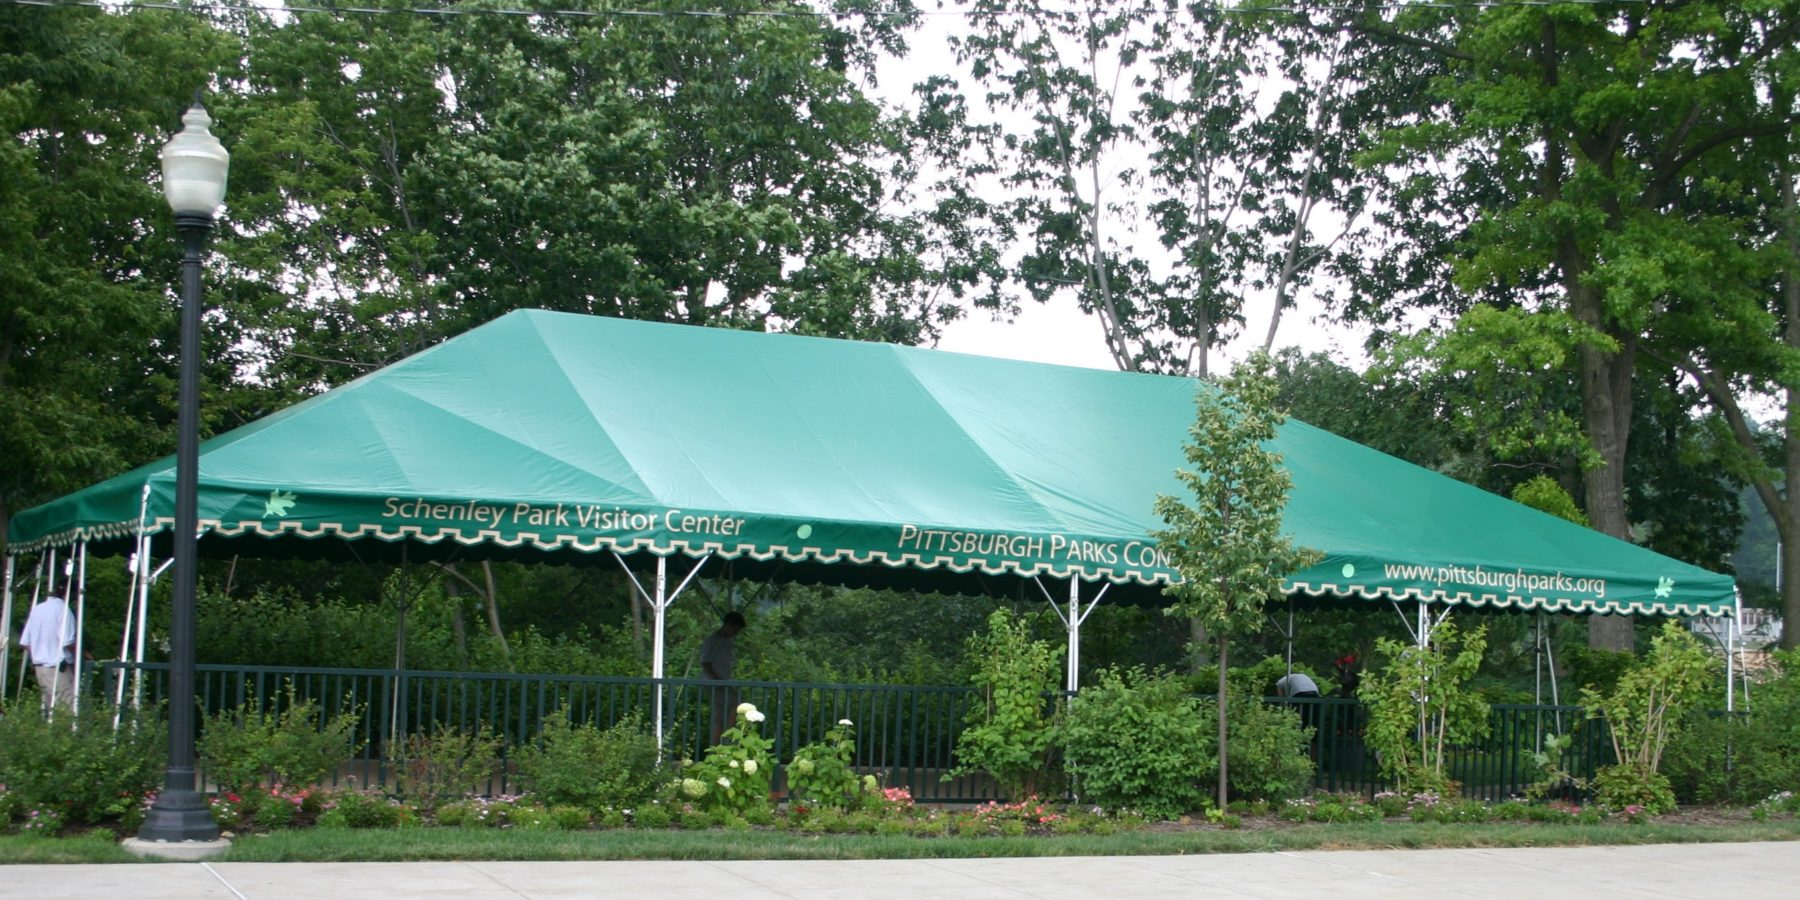 ... tent for your home or business PartySavvy sells new and used tents in stock sizes and custom specifications. We can also assist with tent installation ... & Tent Rental Chair Rental Wedding Rentals | Pittsburgh PA